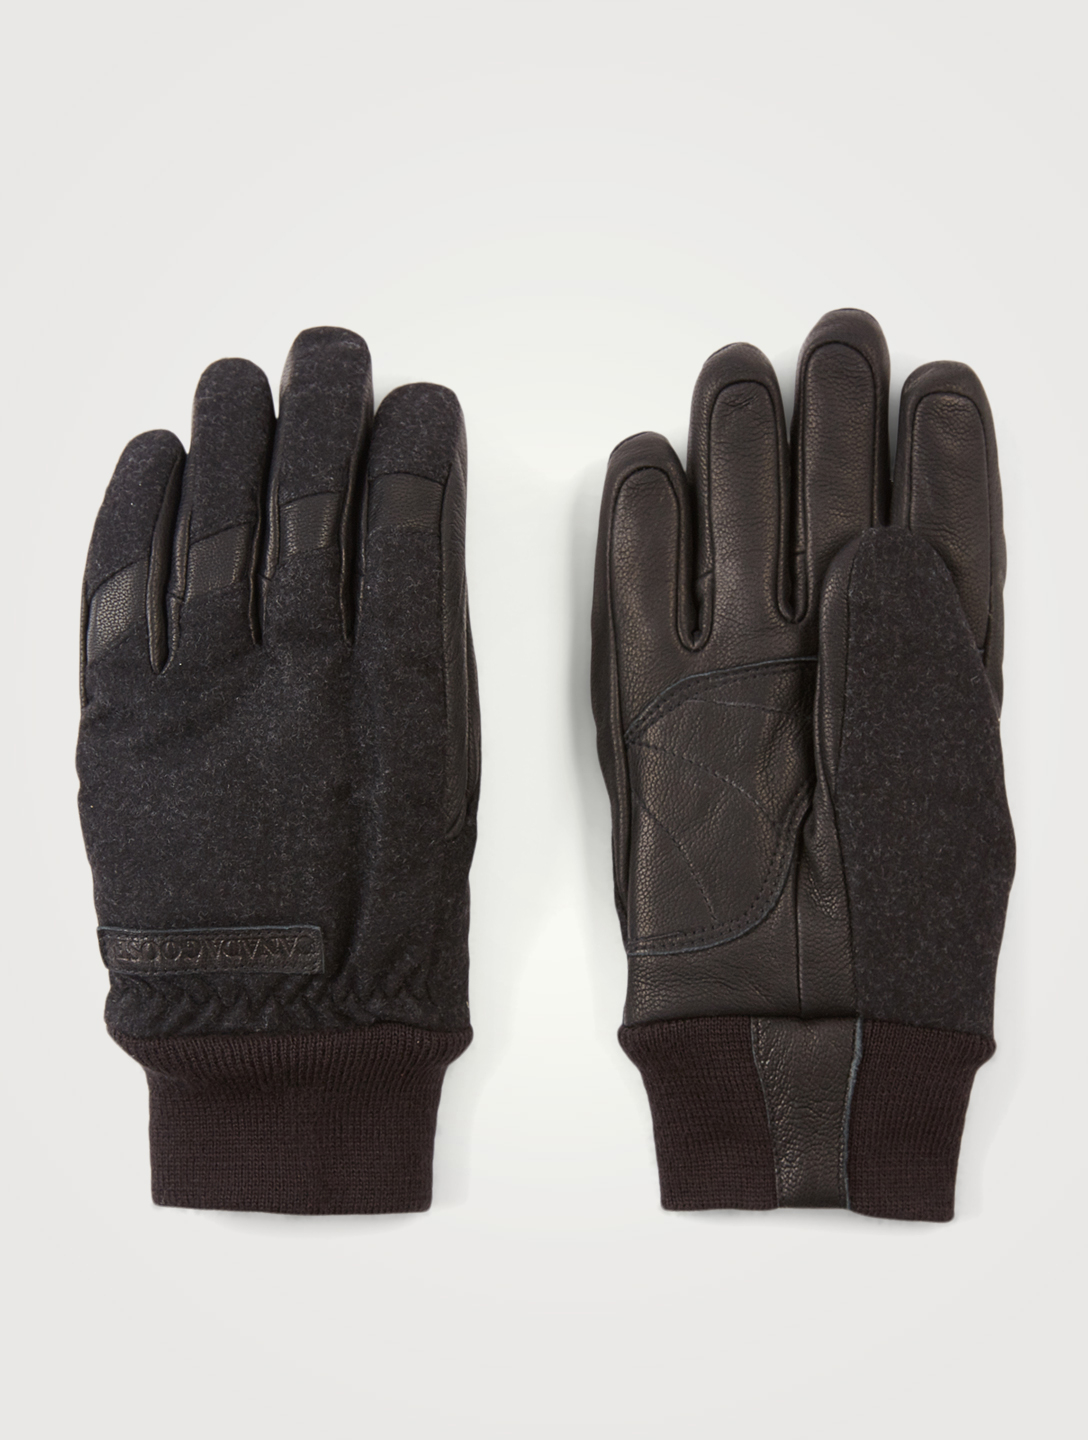 CANADA GOOSE Wool And Leather Gloves Women's Black